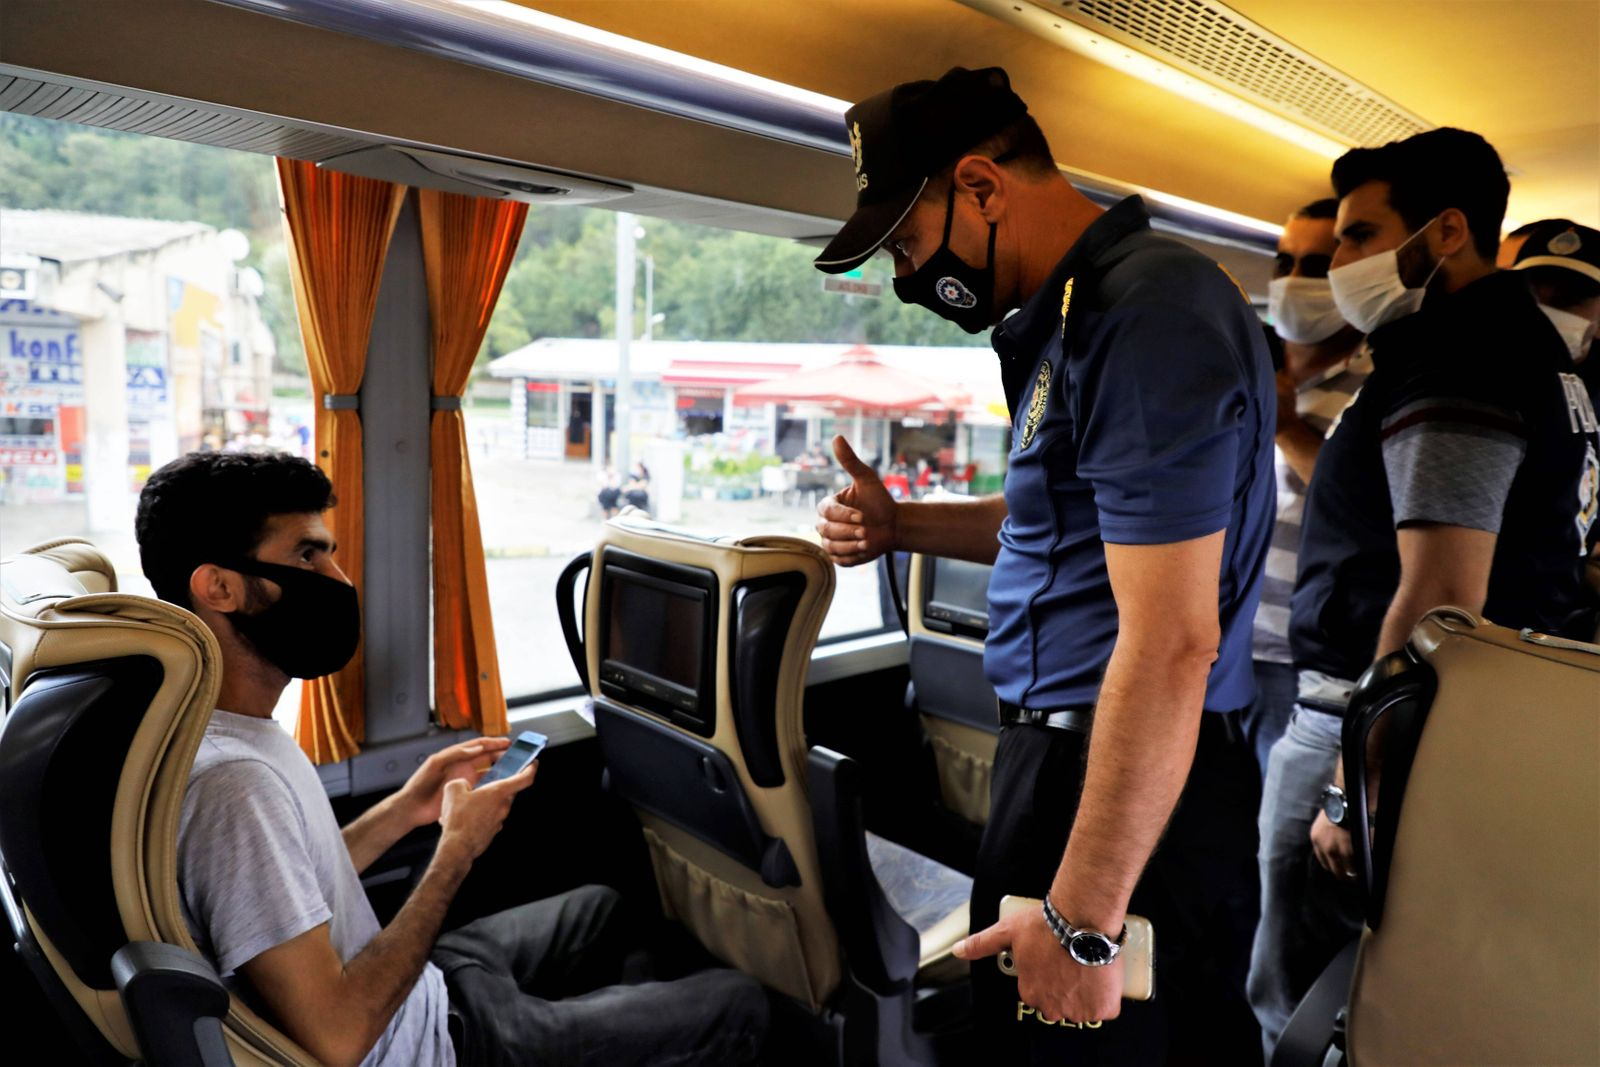 (200904) -- ISTANBUL, Sept. 4, 2020 -- A police officer inspects a passenger on a bus in Istanbul, Turkey, on Sept. 4, 2